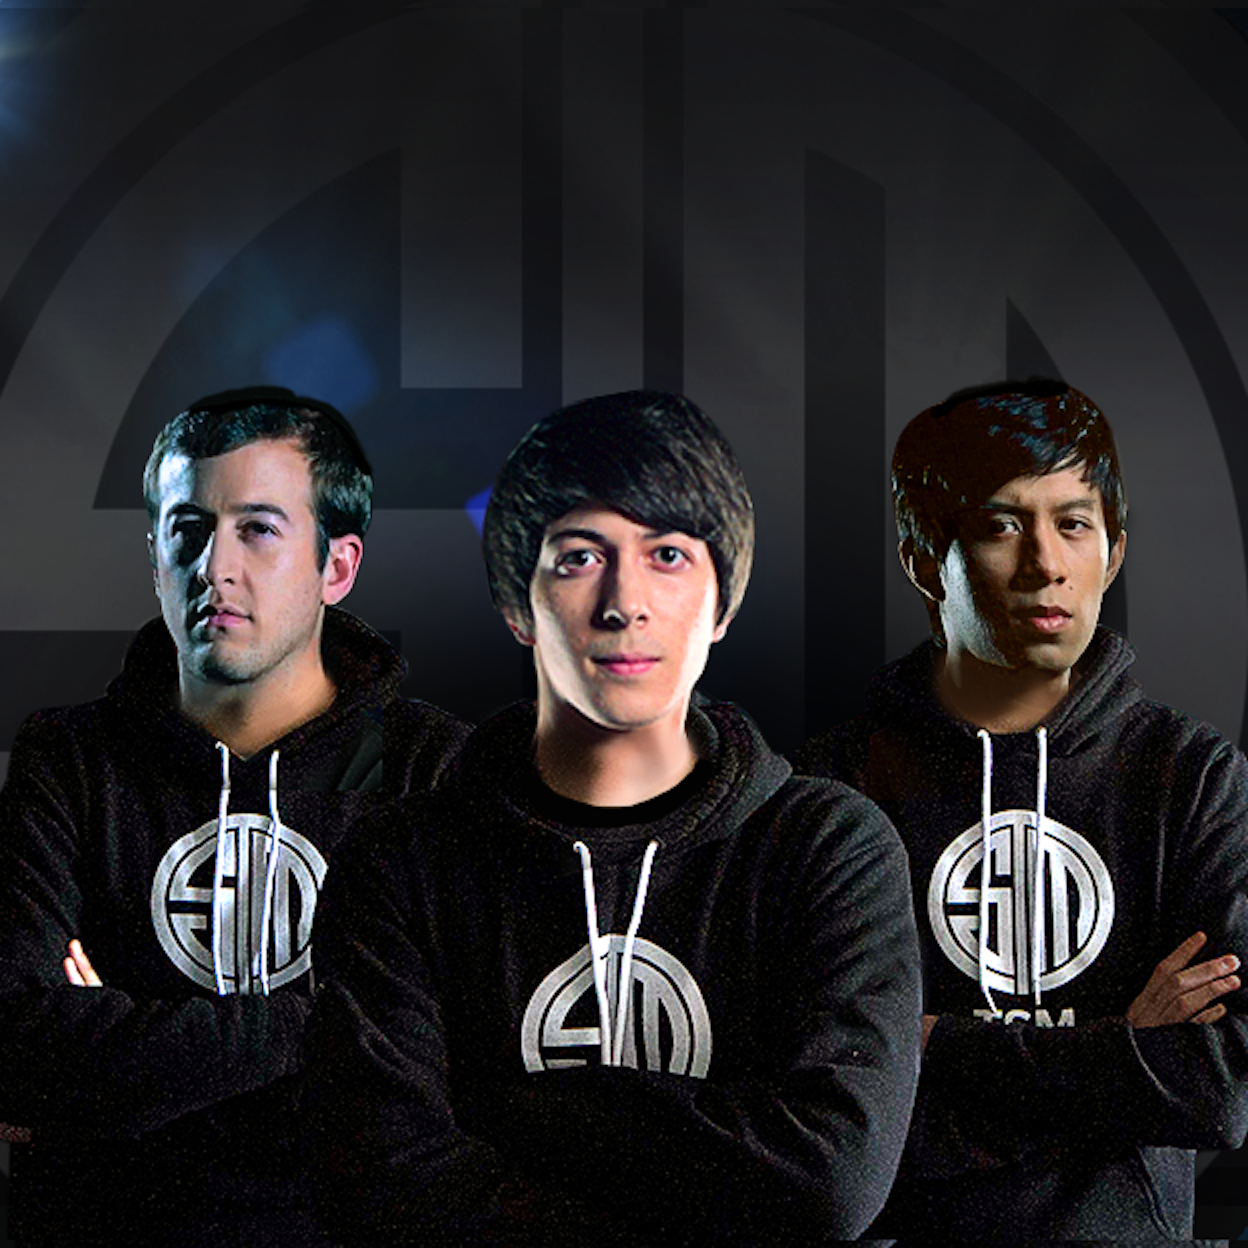 That's Valore there on the left with the original TSM 'Vainglory' team.